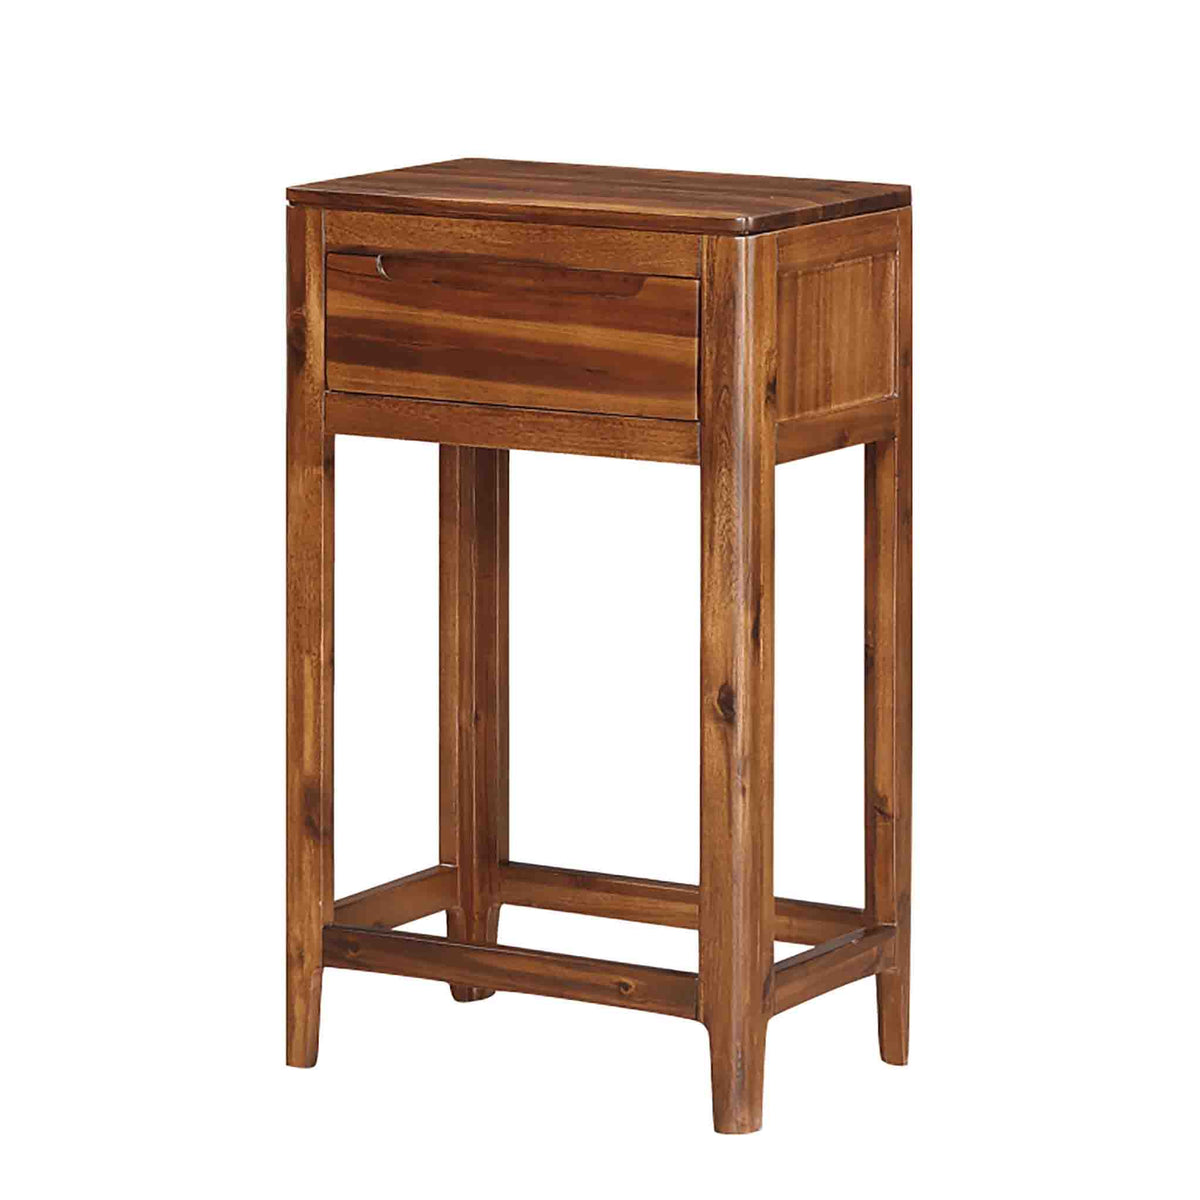 The Dunmore Acaica Dark Wood Hallway Table with Drawer from Roseland Furniture